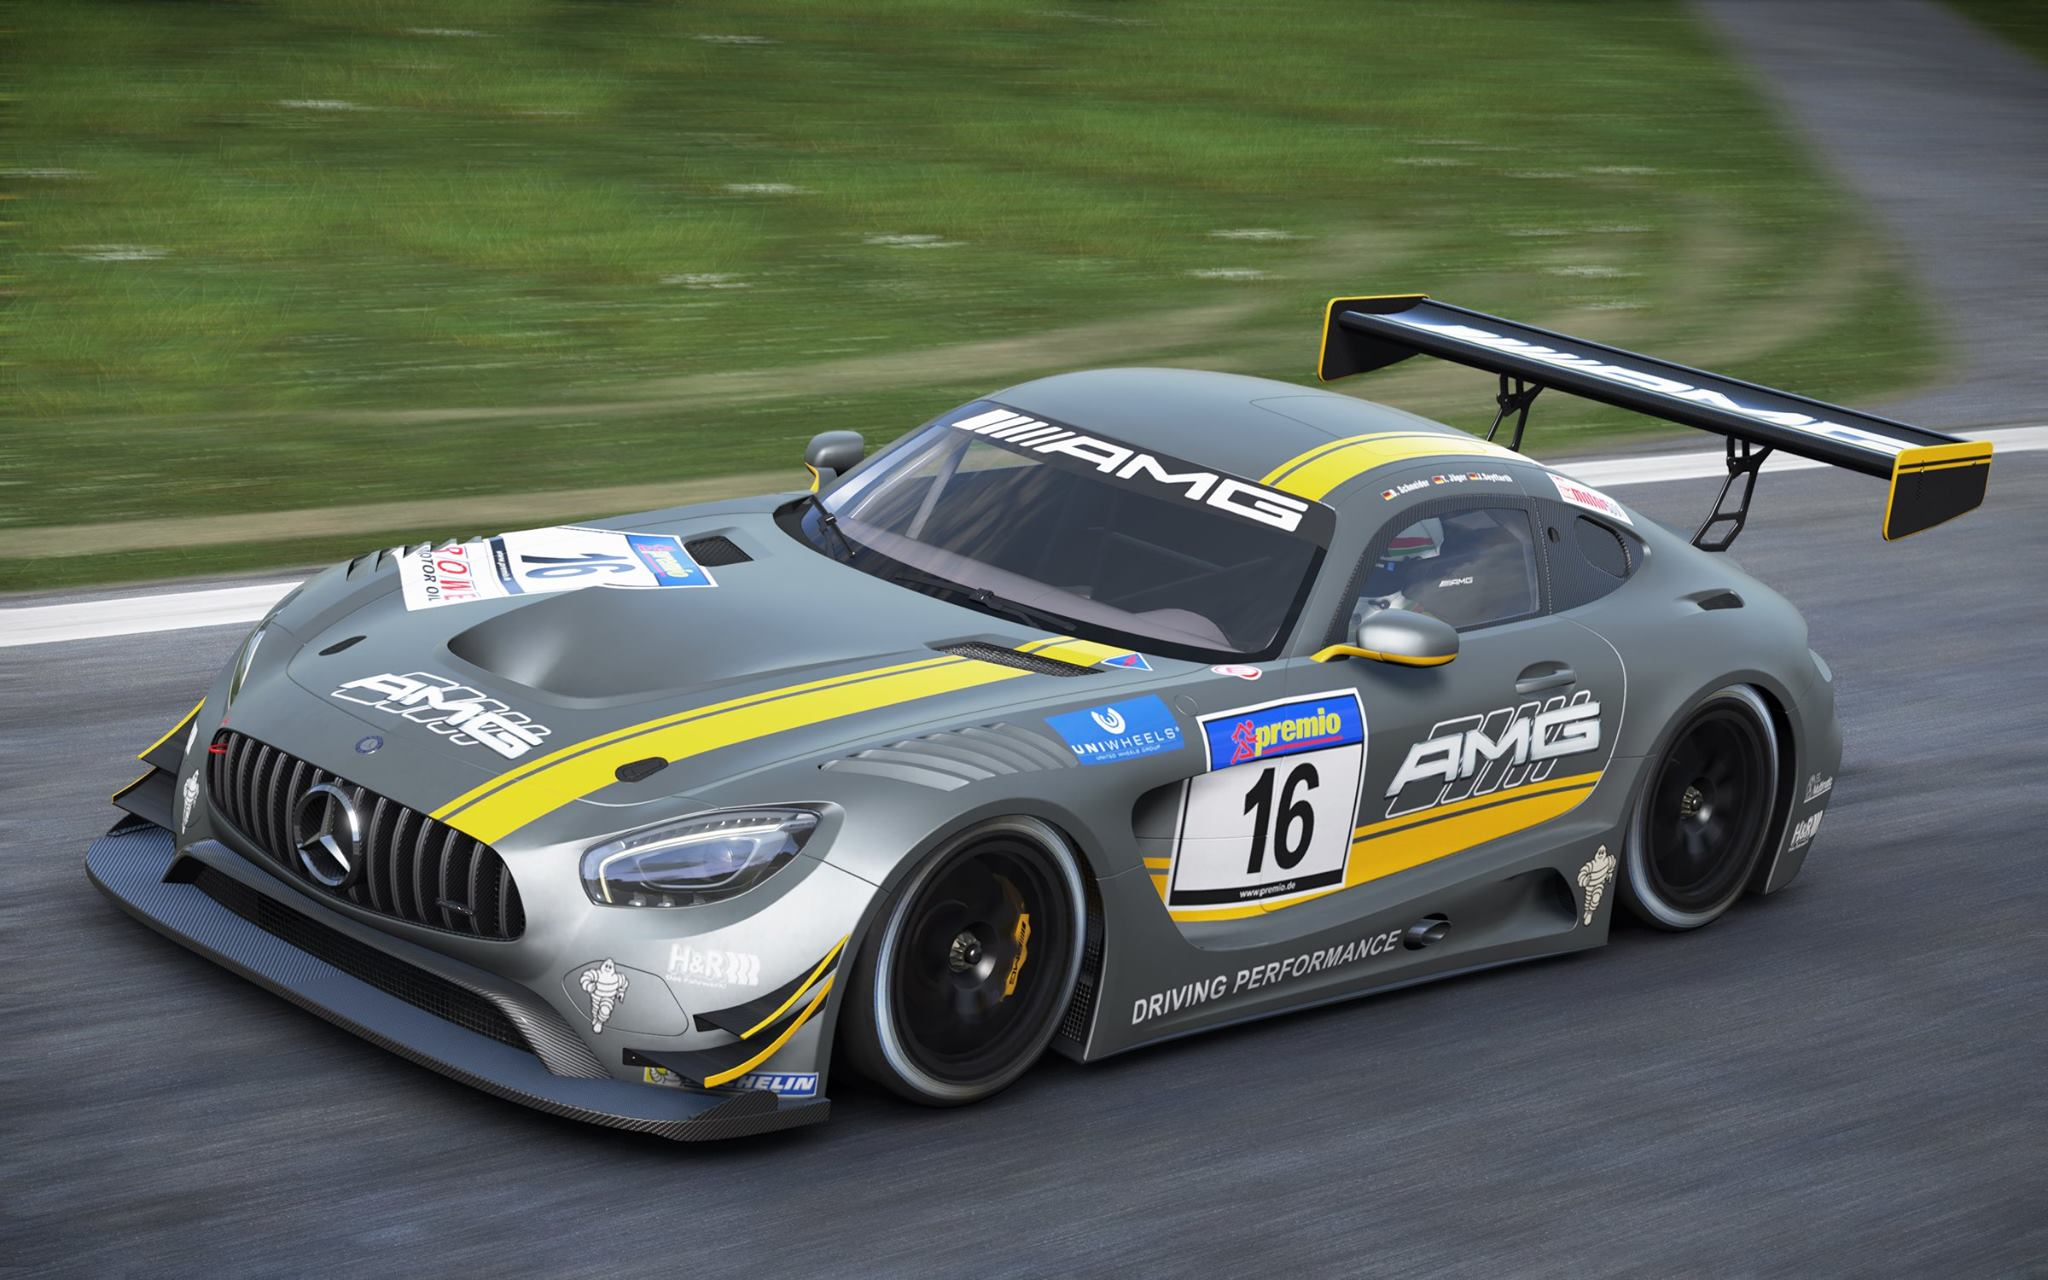 project cars das freecar im april ist ein mercedes amg gt3 news mgm. Black Bedroom Furniture Sets. Home Design Ideas